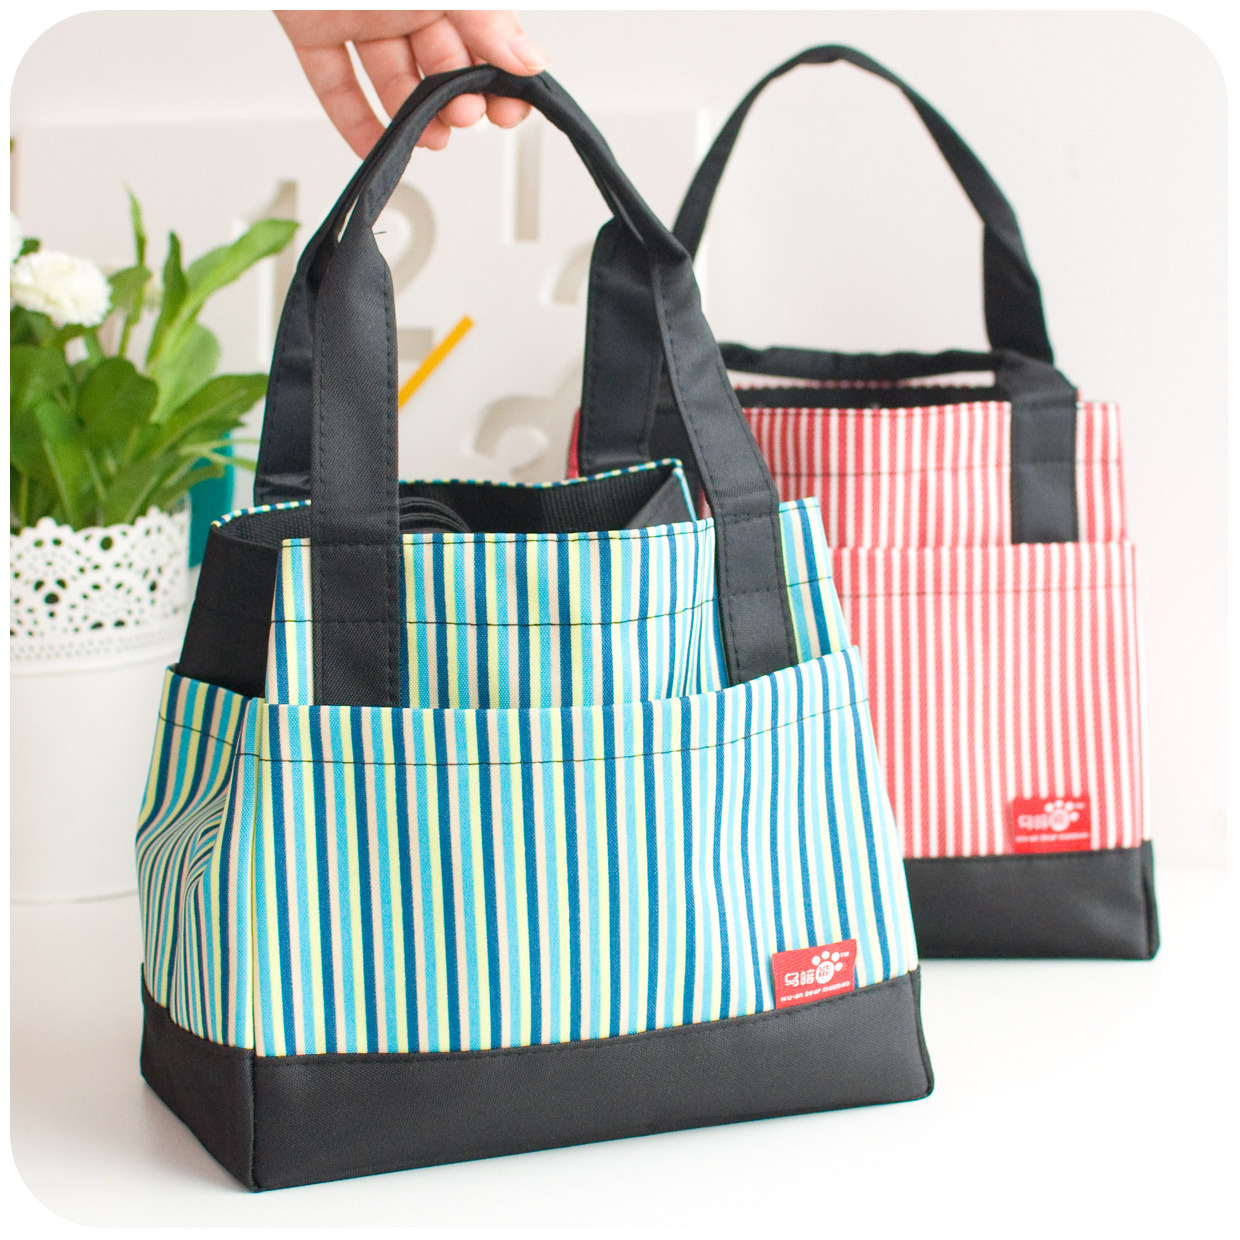 Stylish Lunch Bags for Women 8a112debe